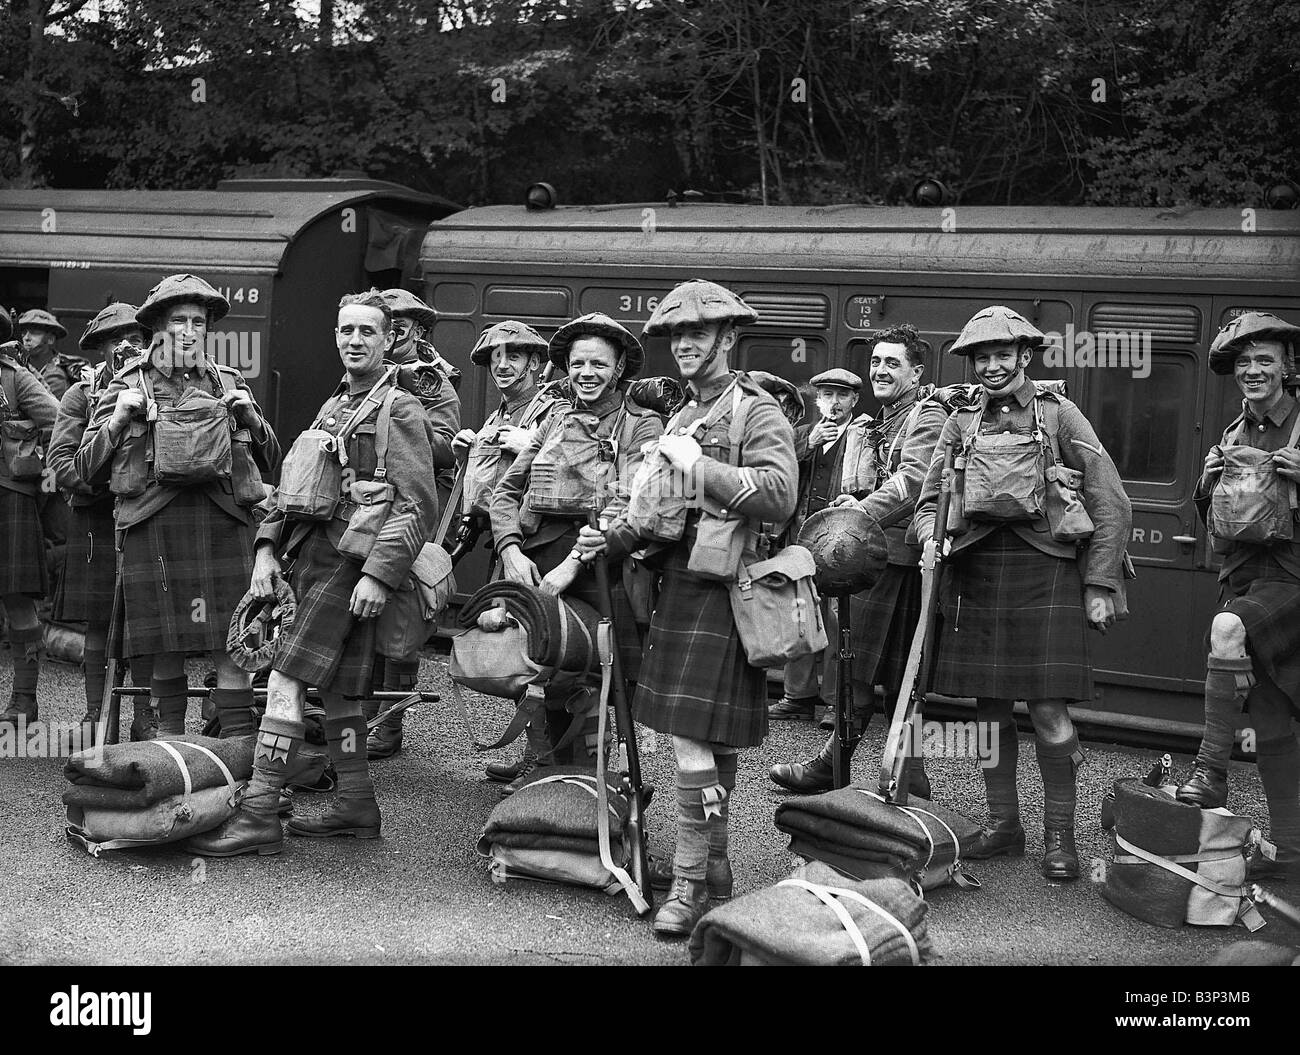 ww2-british-scottish-soldiers-wearing-army-tunics-and-kilts-with-their-b3p3mb.jpg